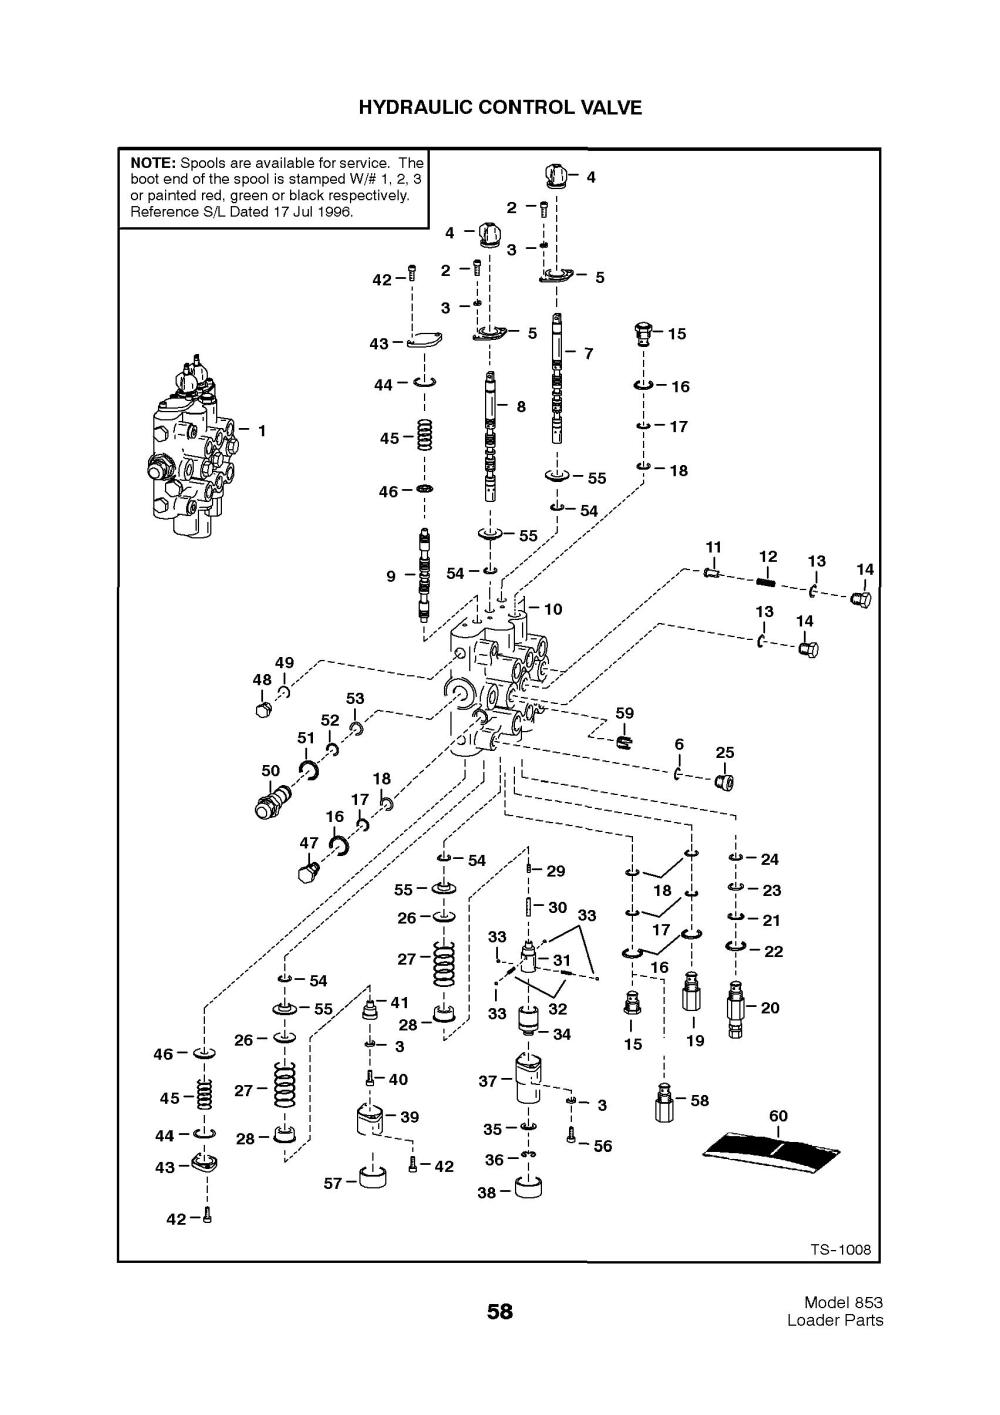 medium resolution of 763 bobcat hydraulic schematic wiring diagram third level bobcat 753 hydraulic diagram bobcat  [ 1000 x 1415 Pixel ]